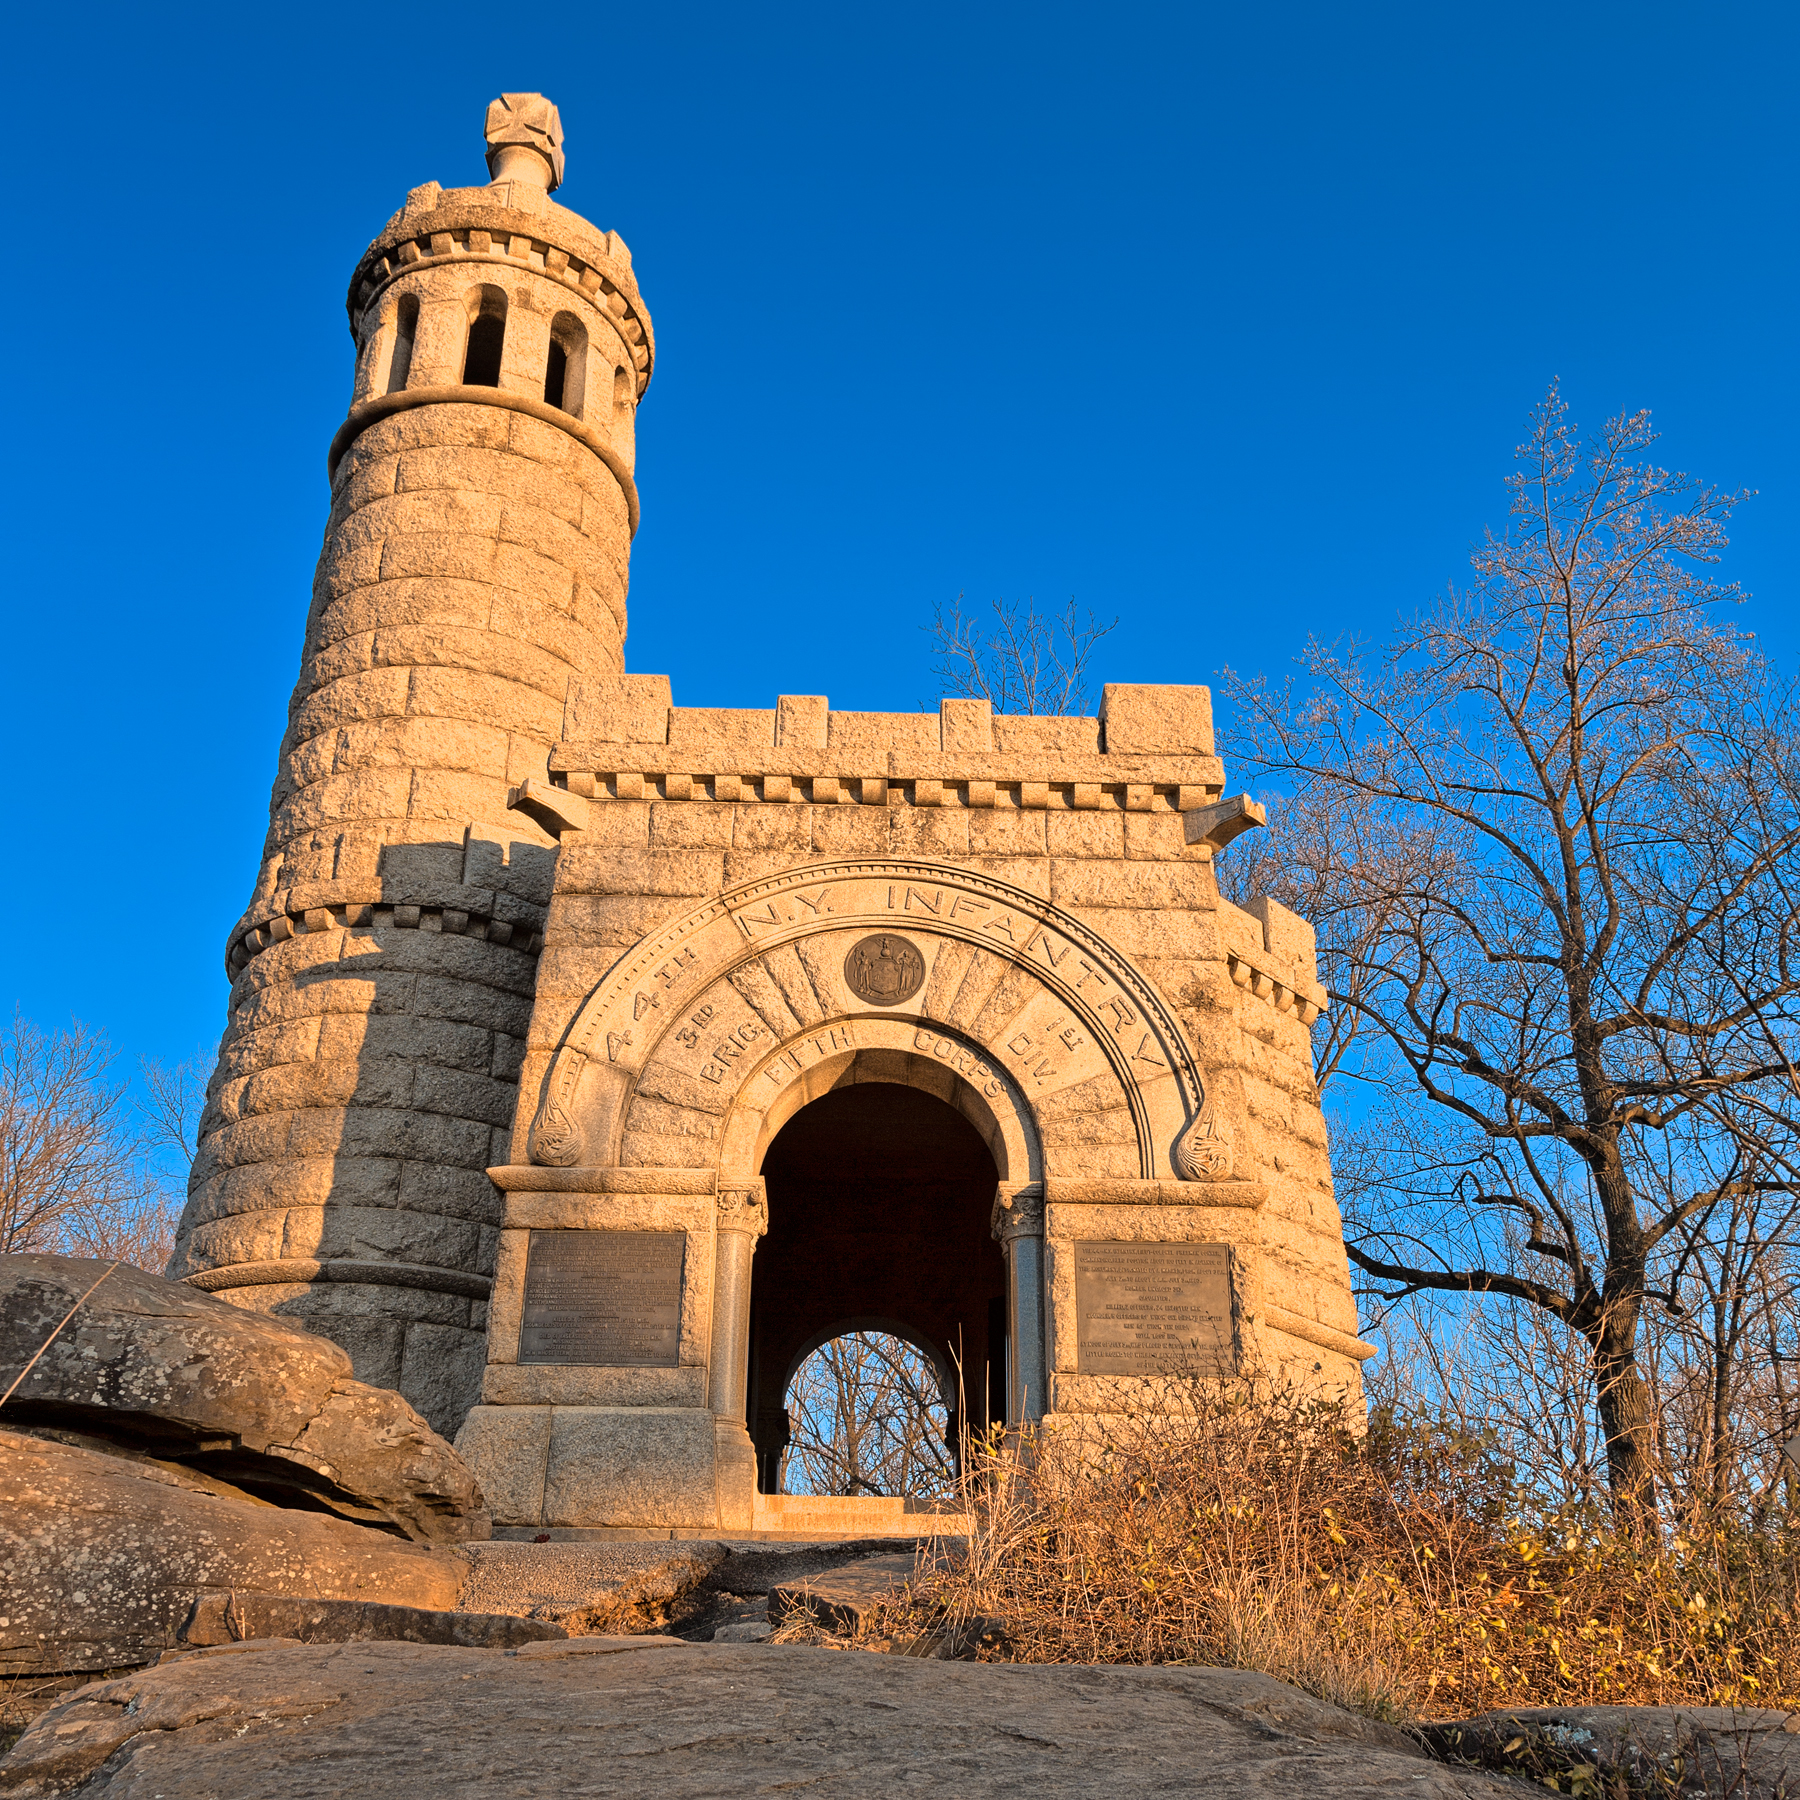 Gettysburg Castle Monument - HDR, Orange, Round, Rocky, Rocks, HQ Photo